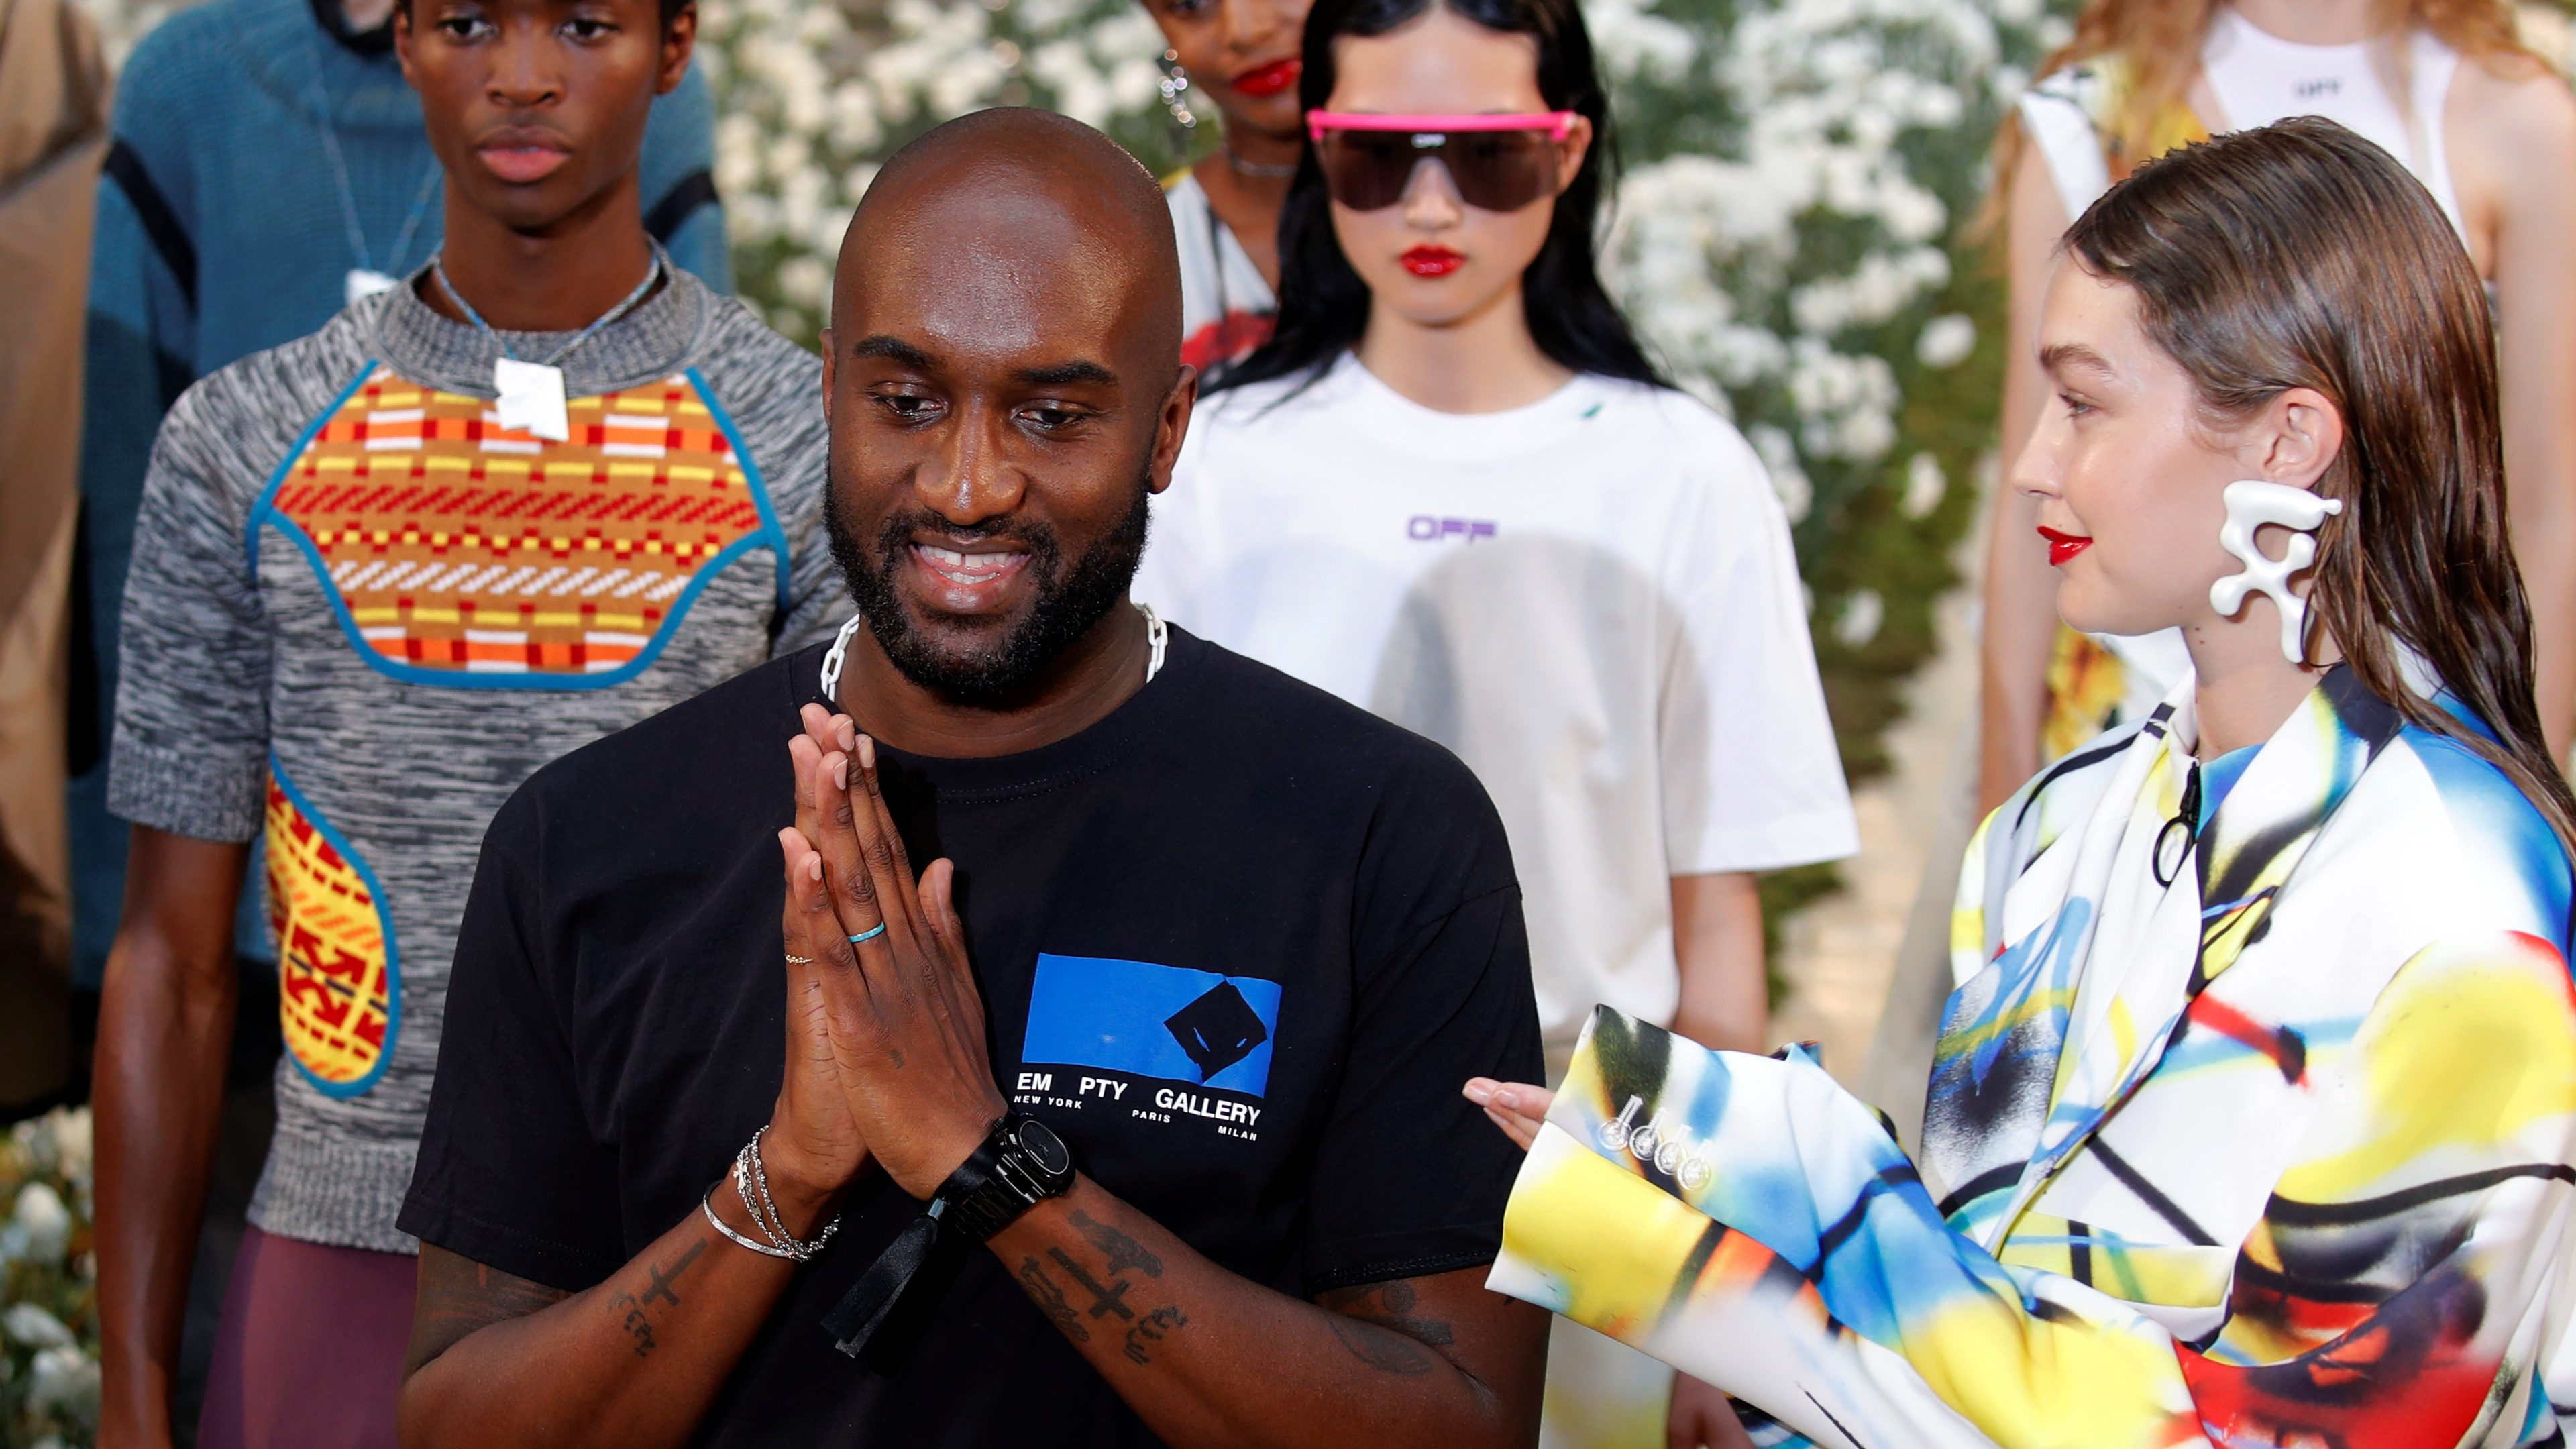 Designer Virgil Abloh appears with model Gigi Hadid at the end of his Spring/Summer 2020 collection show for his label Off-White in Paris